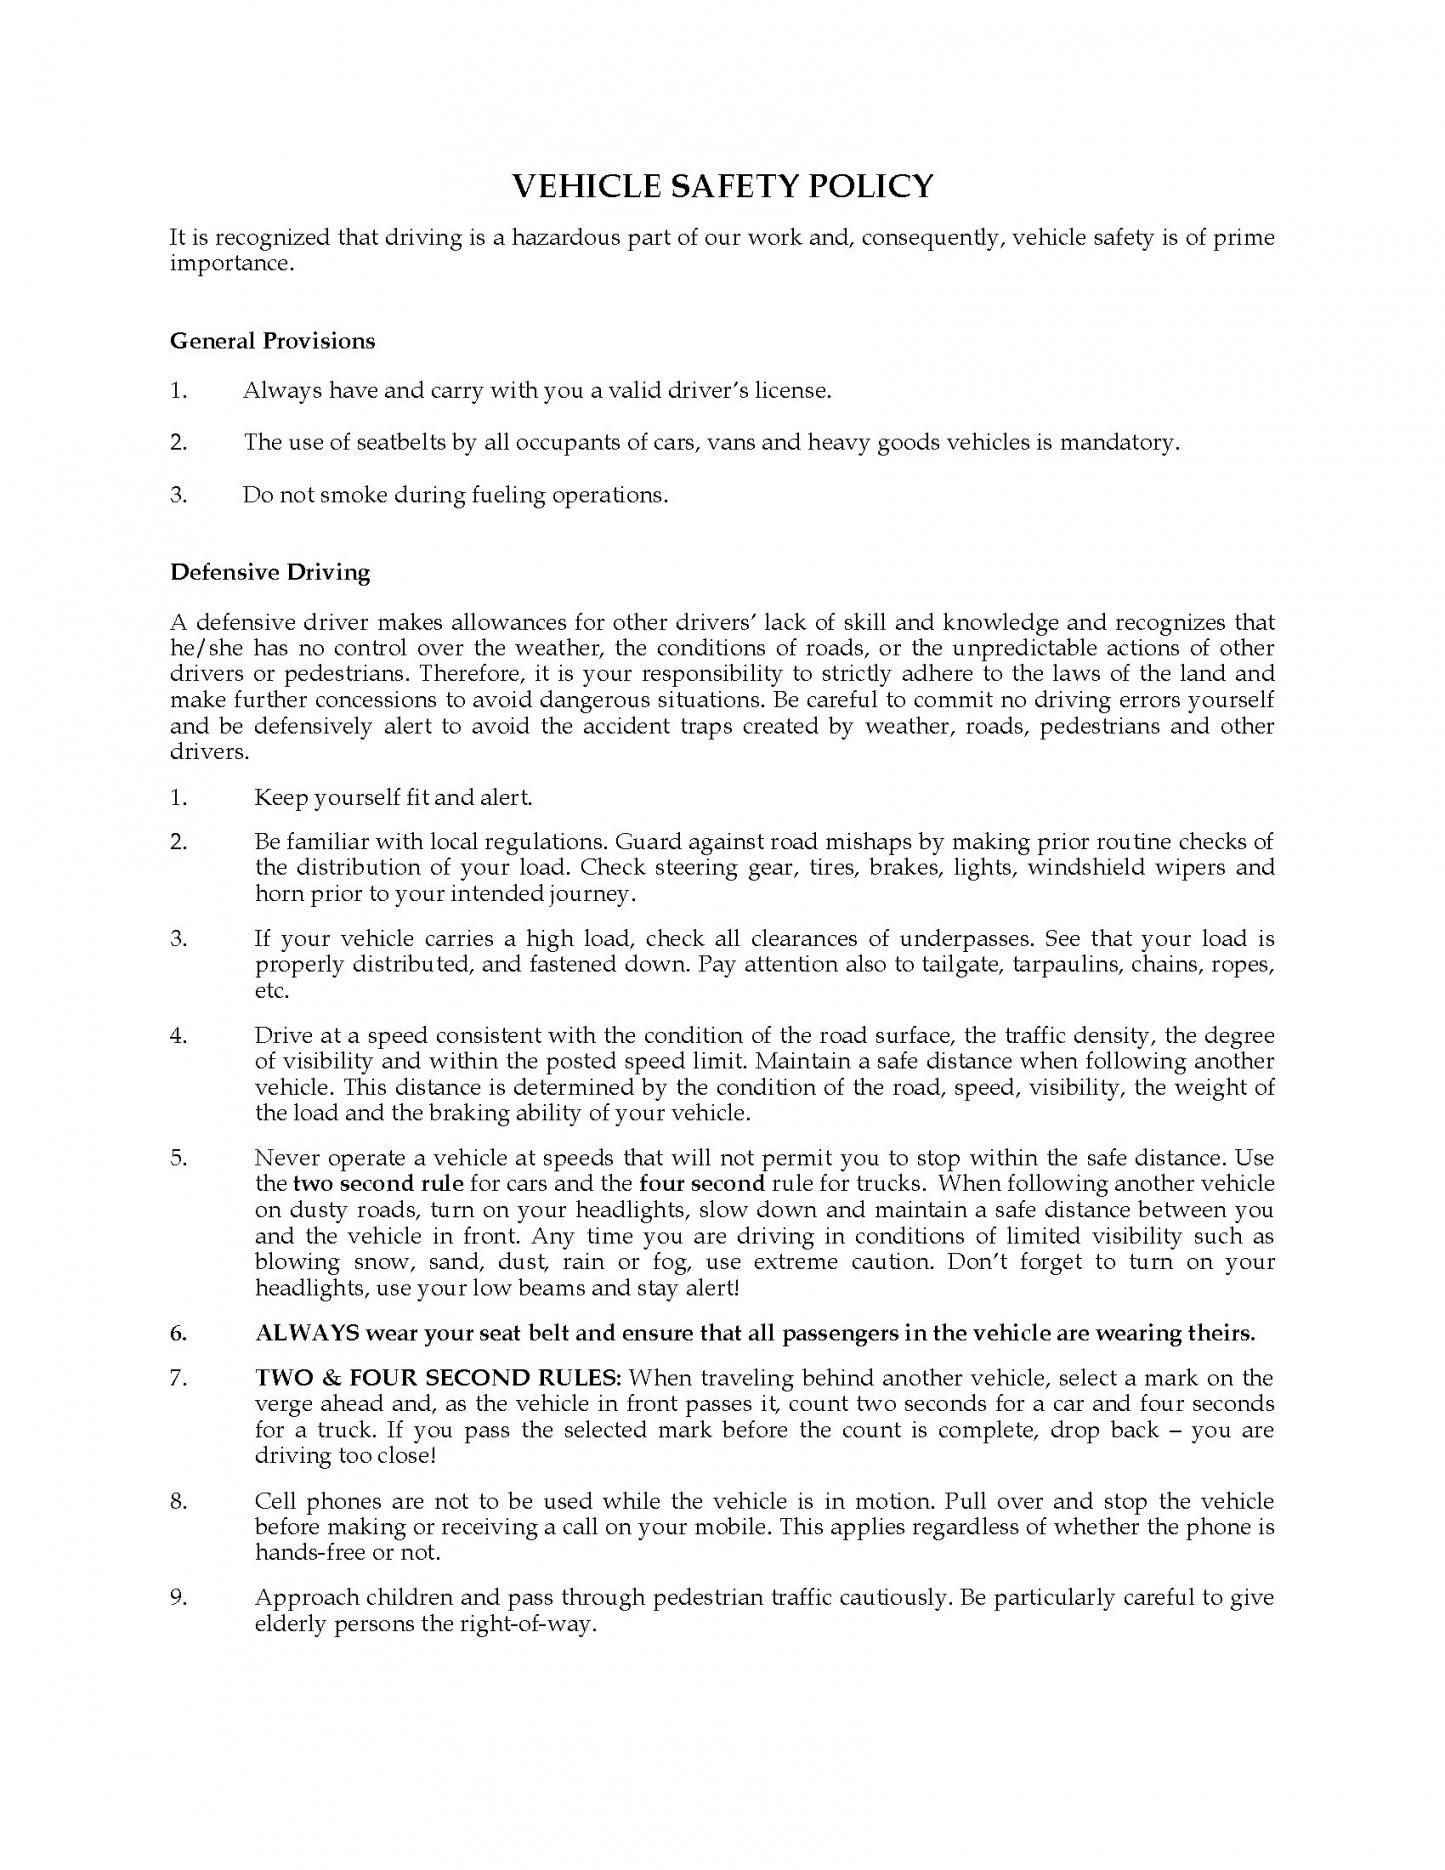 Professional Company Vehicle Policy Template Example In 2021 Policy Template Startup Company Policies